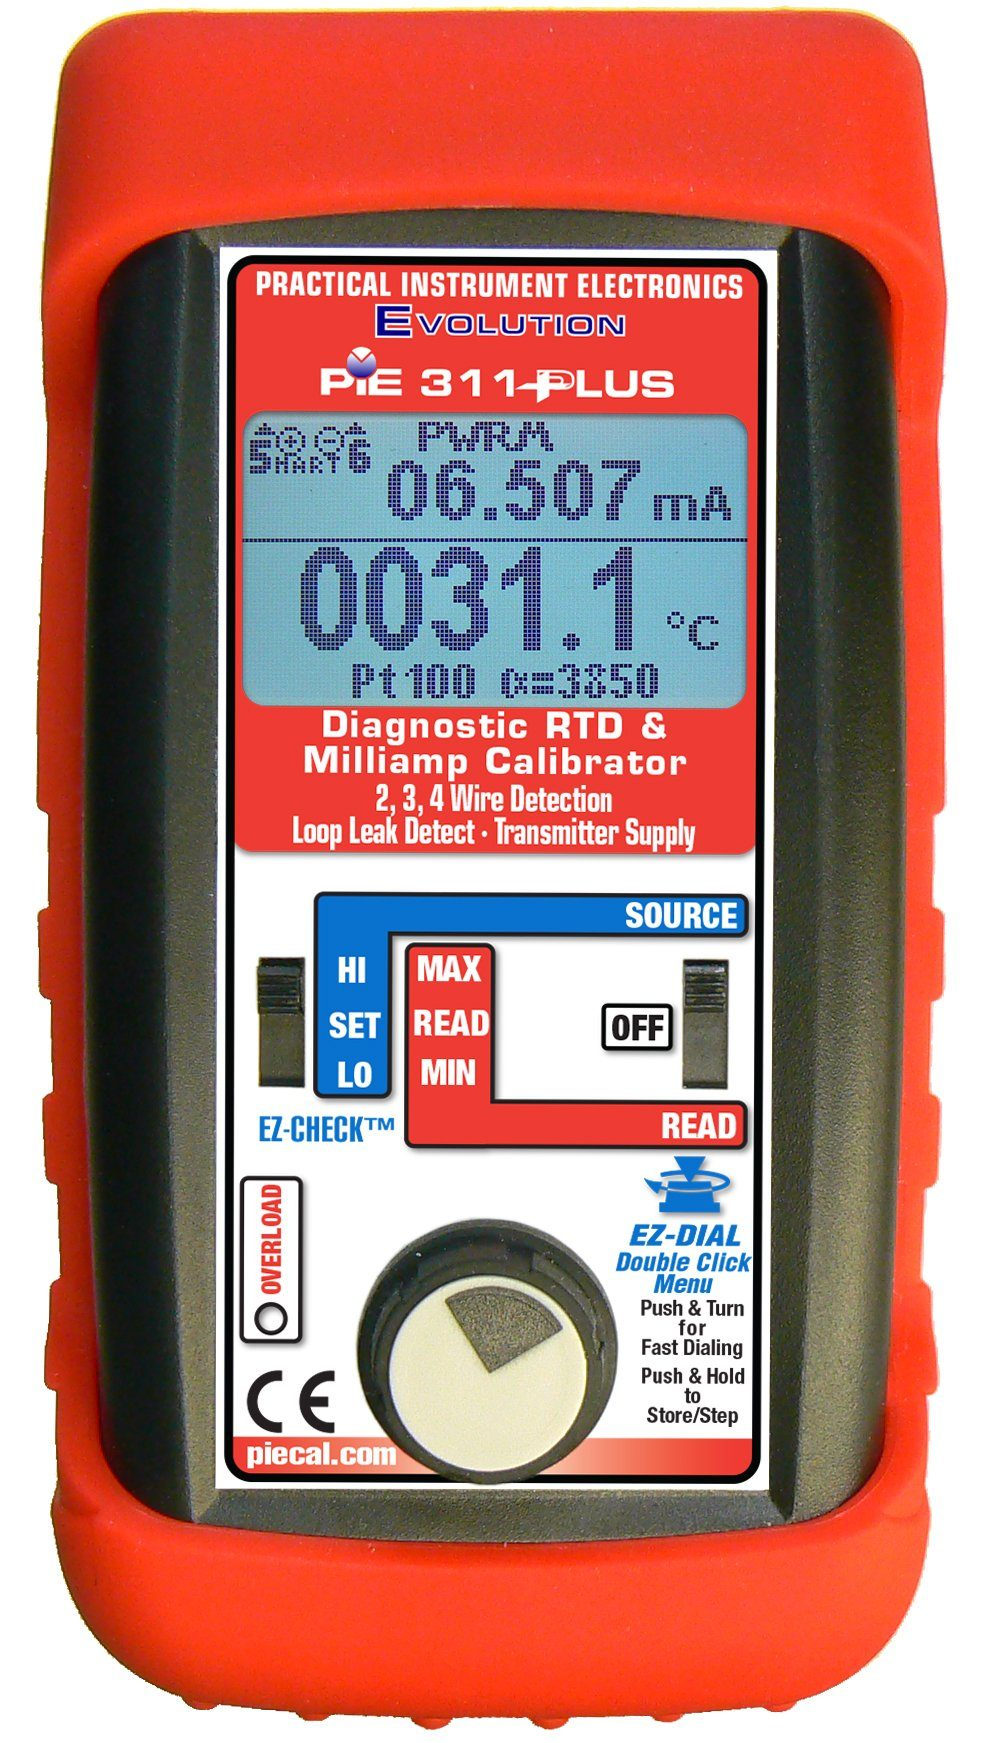 PIE 311-PLUS Diagnostic RTD/Milliamp Calibrator